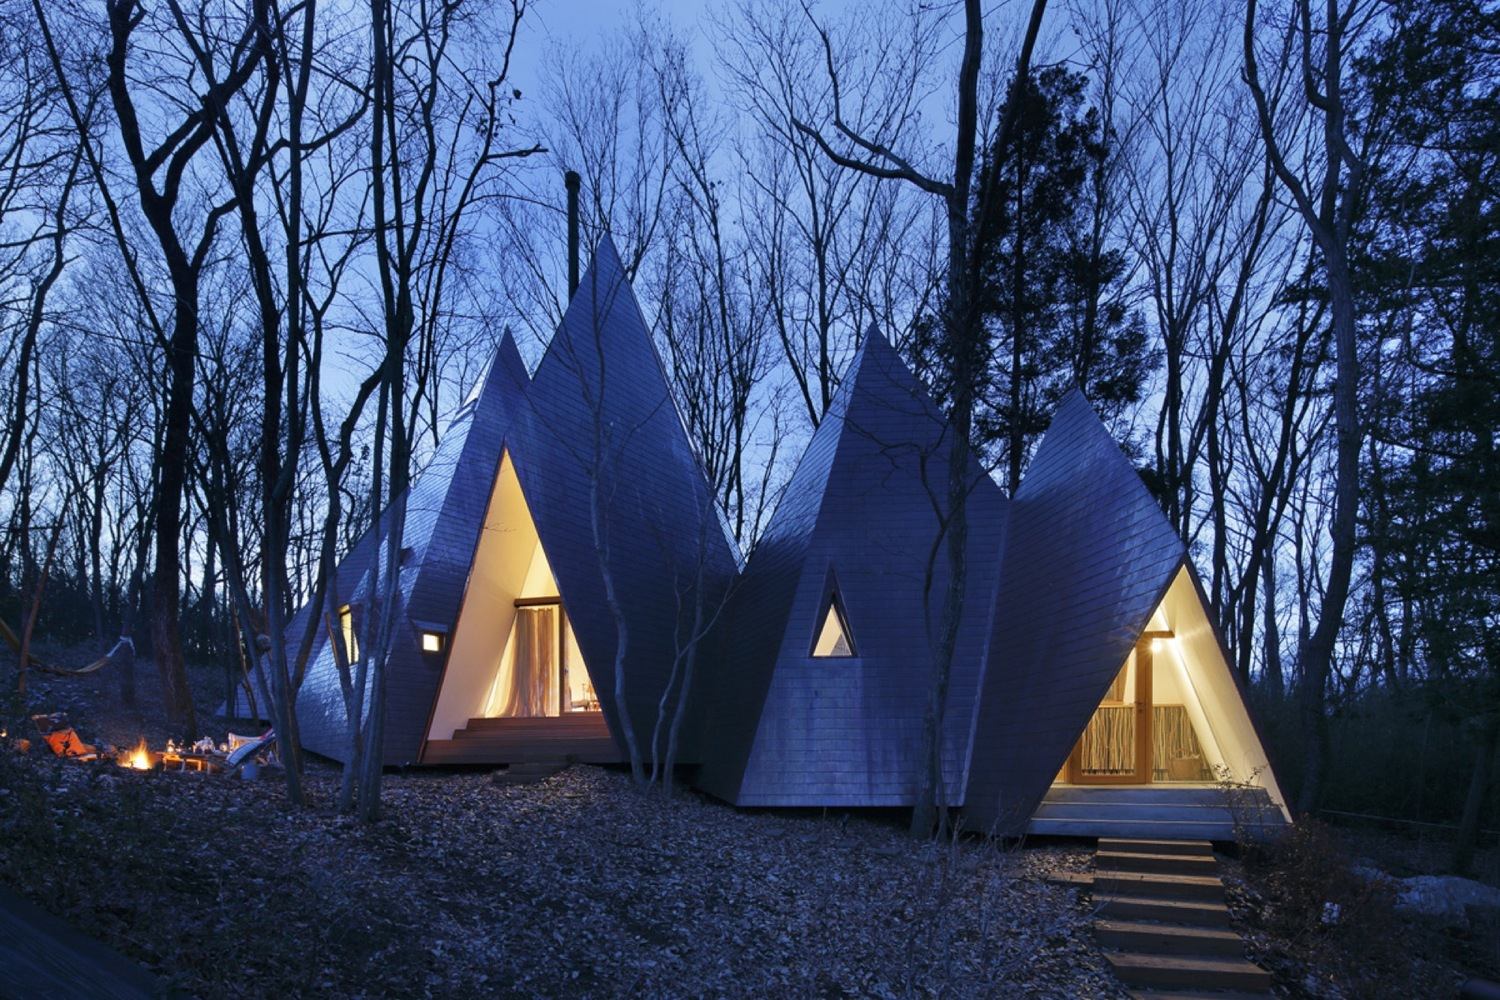 Nasu tepee by hiroshi nakamura nap archiscene your daily architecture design update - The tepee house eccentric design in the midst of the woods ...